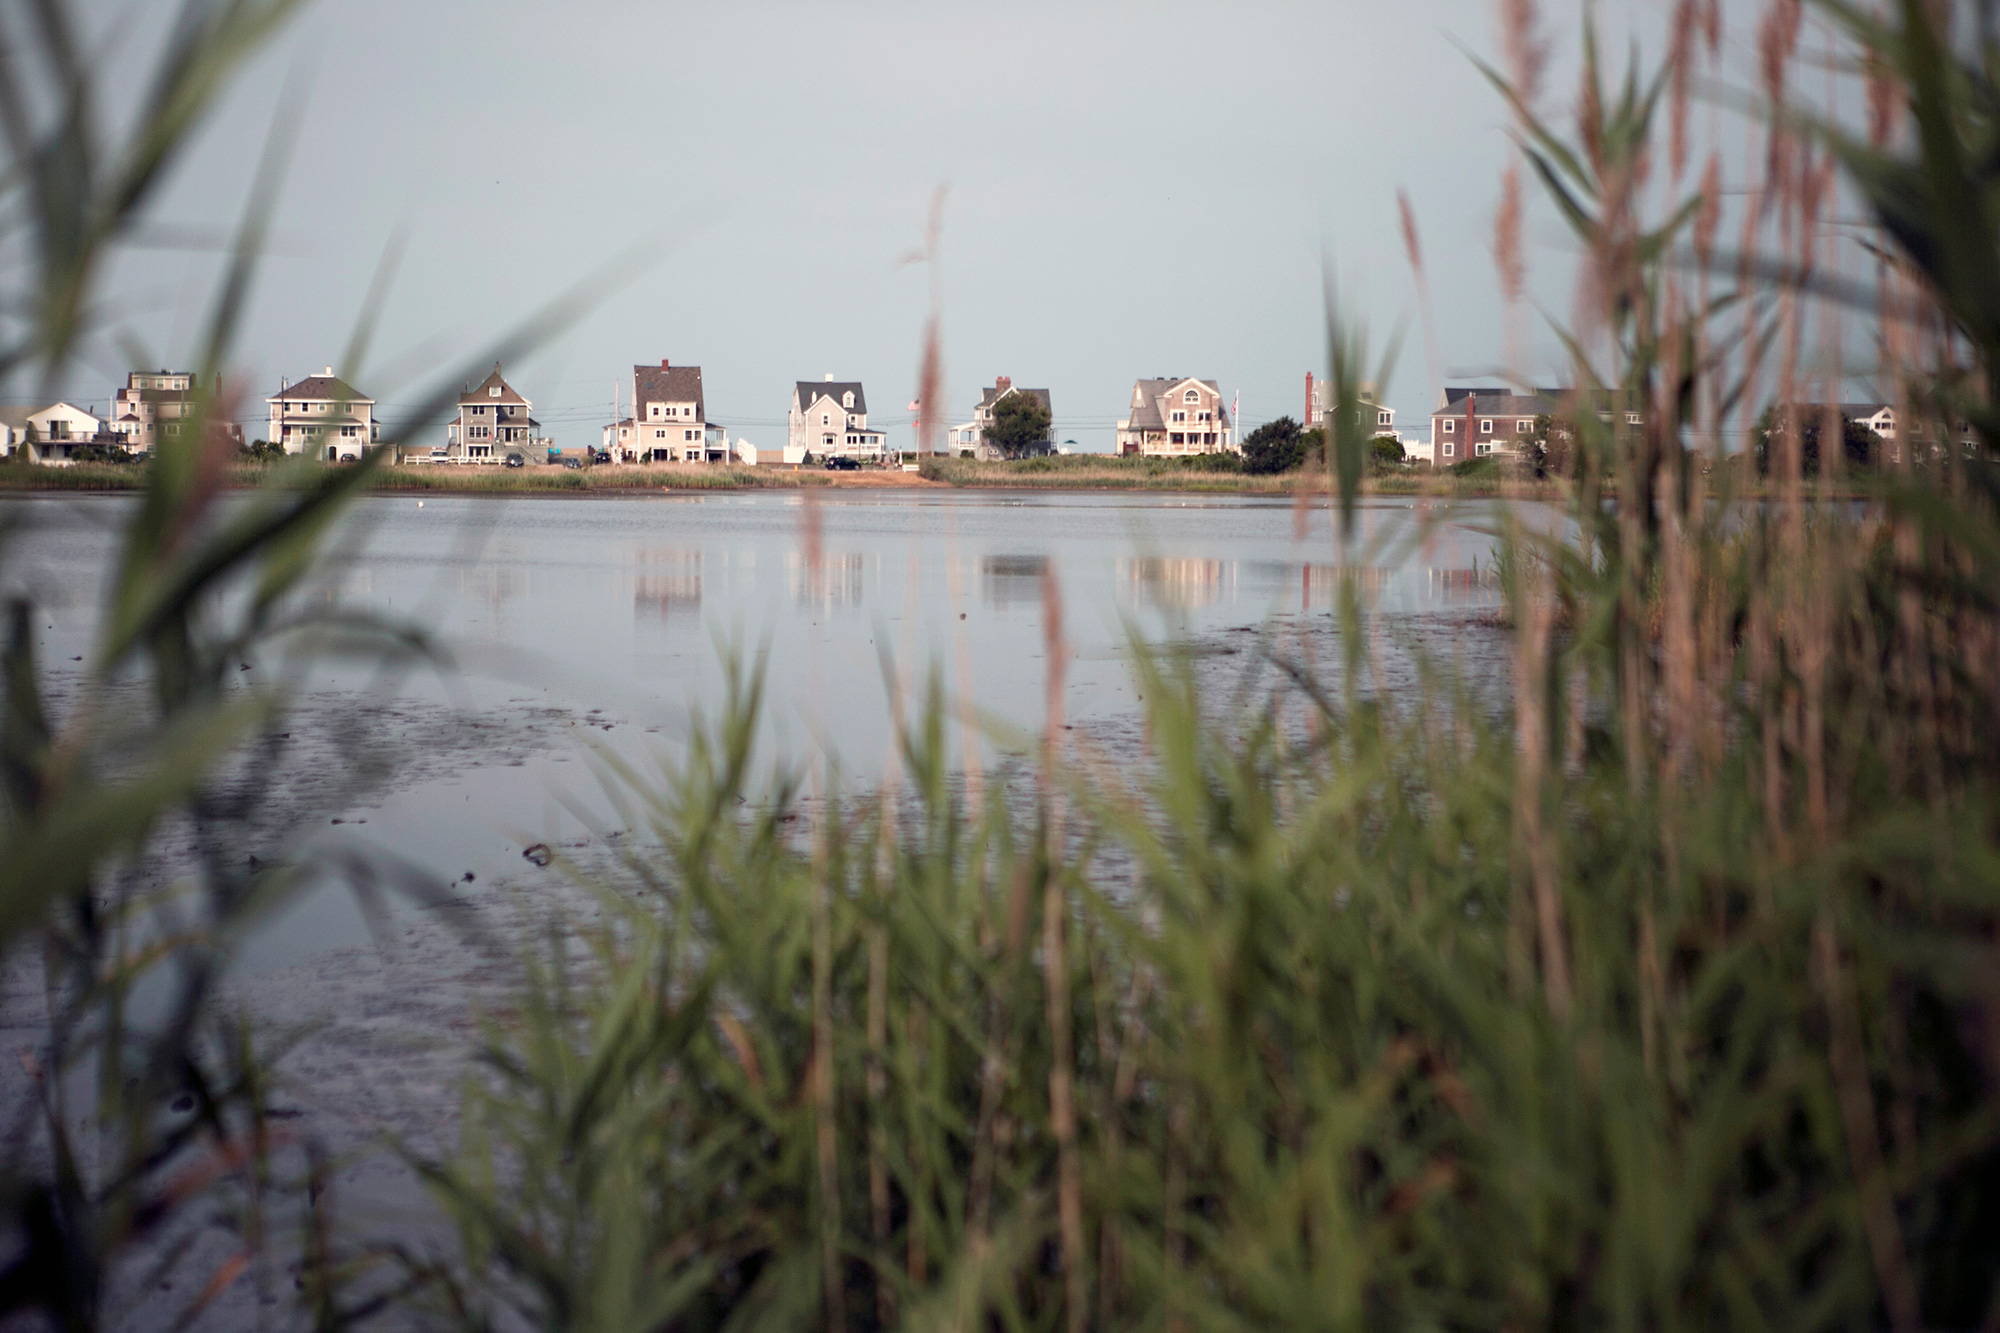 Scituate homes are being raised 16 to 20 feet above sea level to comply with the '100-year-storm flood marker,' a level that fluctuates depending on location. The town offers select grants to homeowners to adapt their homes for flooding through the Federal Hazard Mitigation Grant Program. Financial assistance can provide up to 75 percent of the total cost of the climate mitigation project. (Photo by Lauren Owens Lambert/GroundTruth)